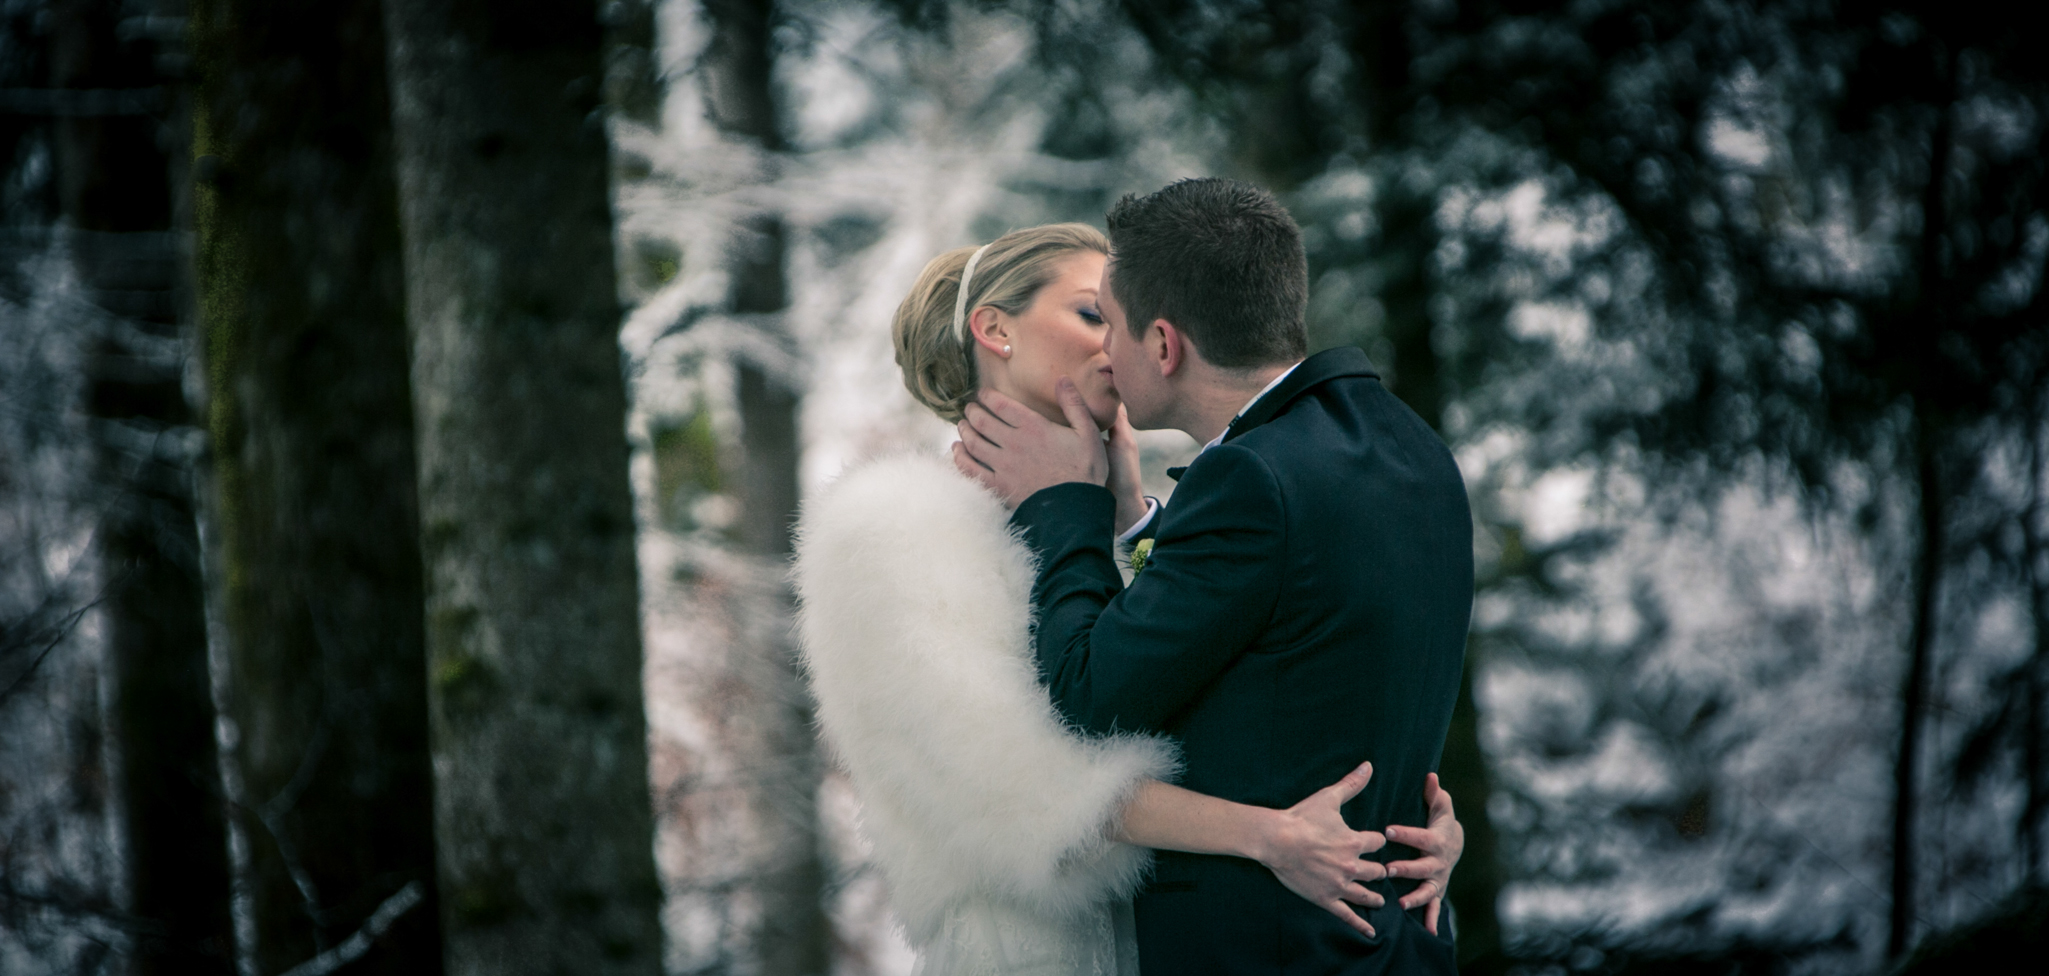 photographe-mariage-ardeche-rhone-alpes-geneve-suisse-photo-neige-annecy-hiver-22